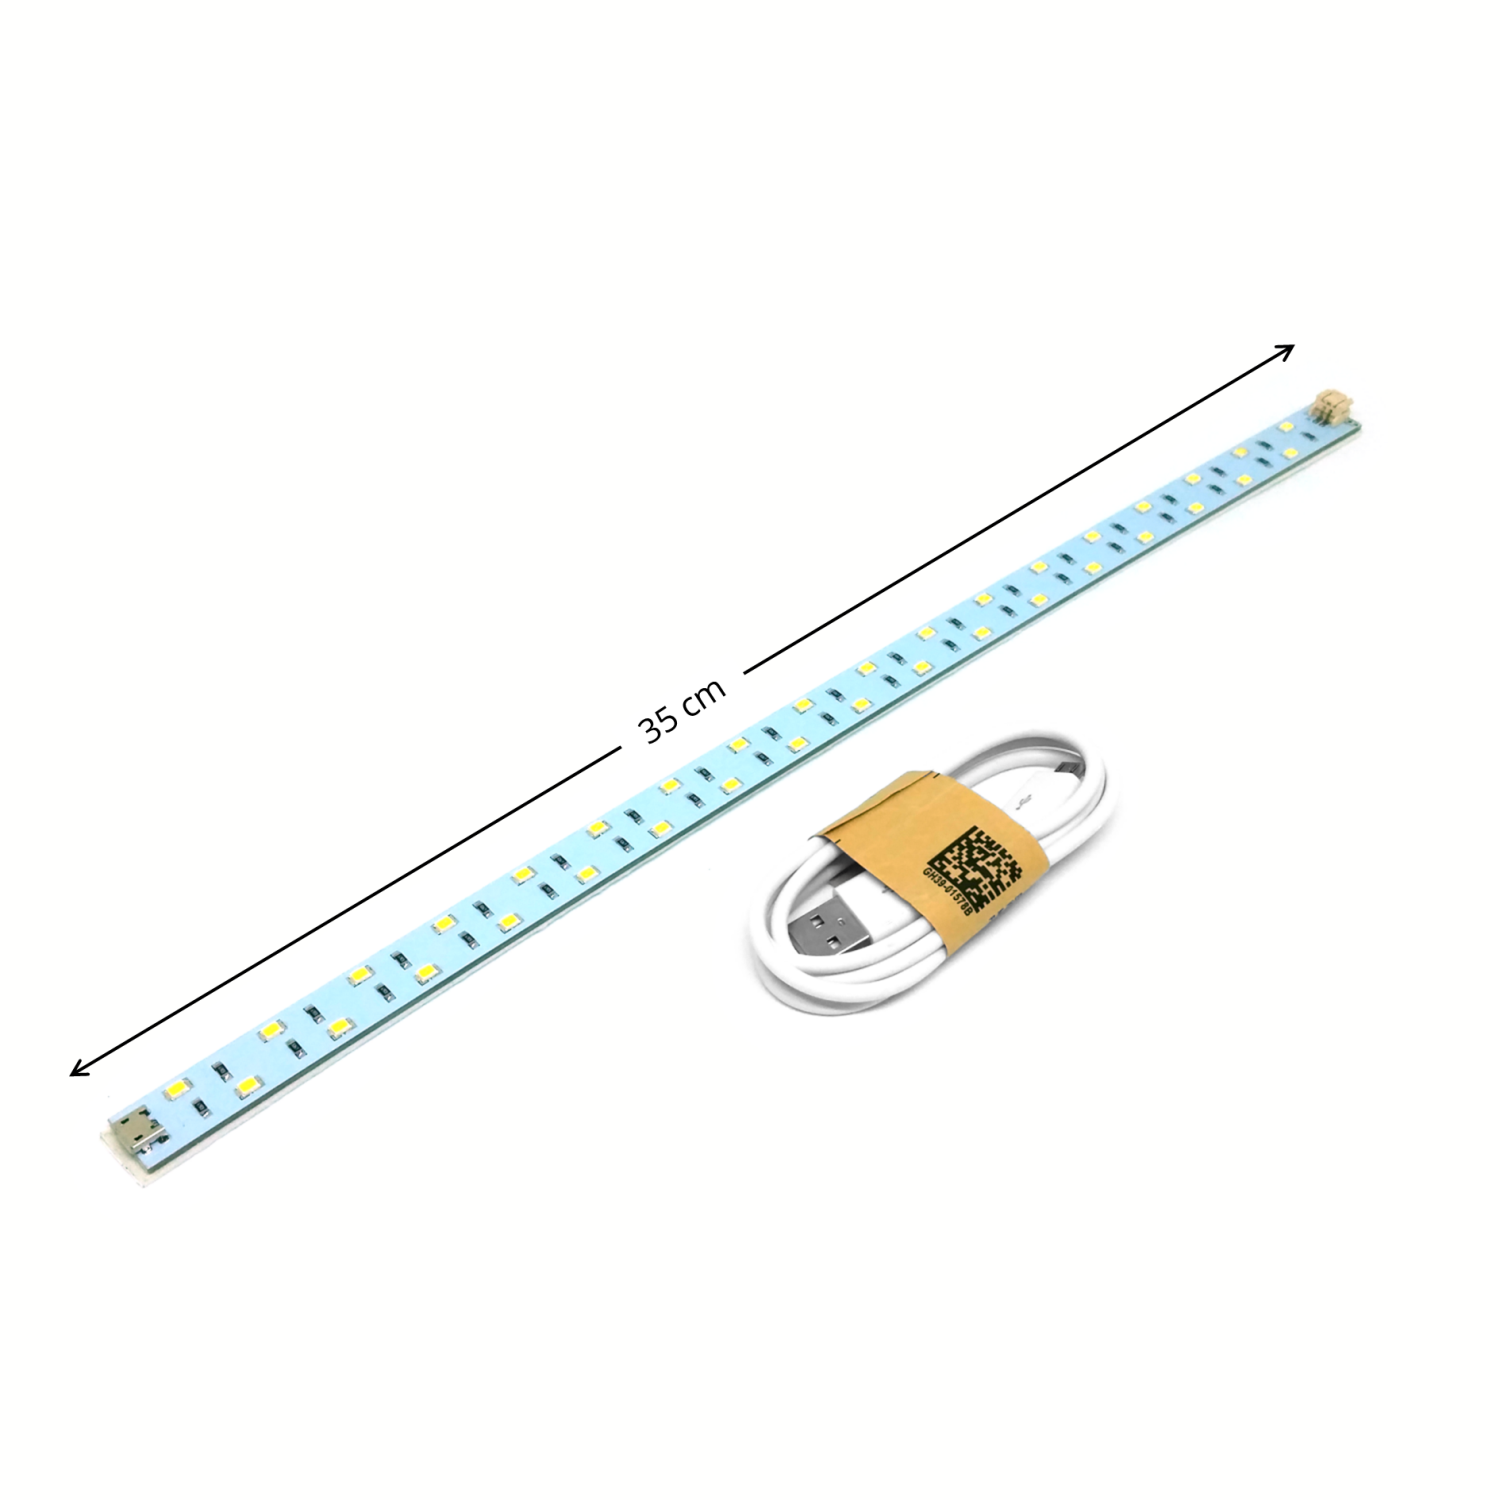 LED light strip USB cable measurement